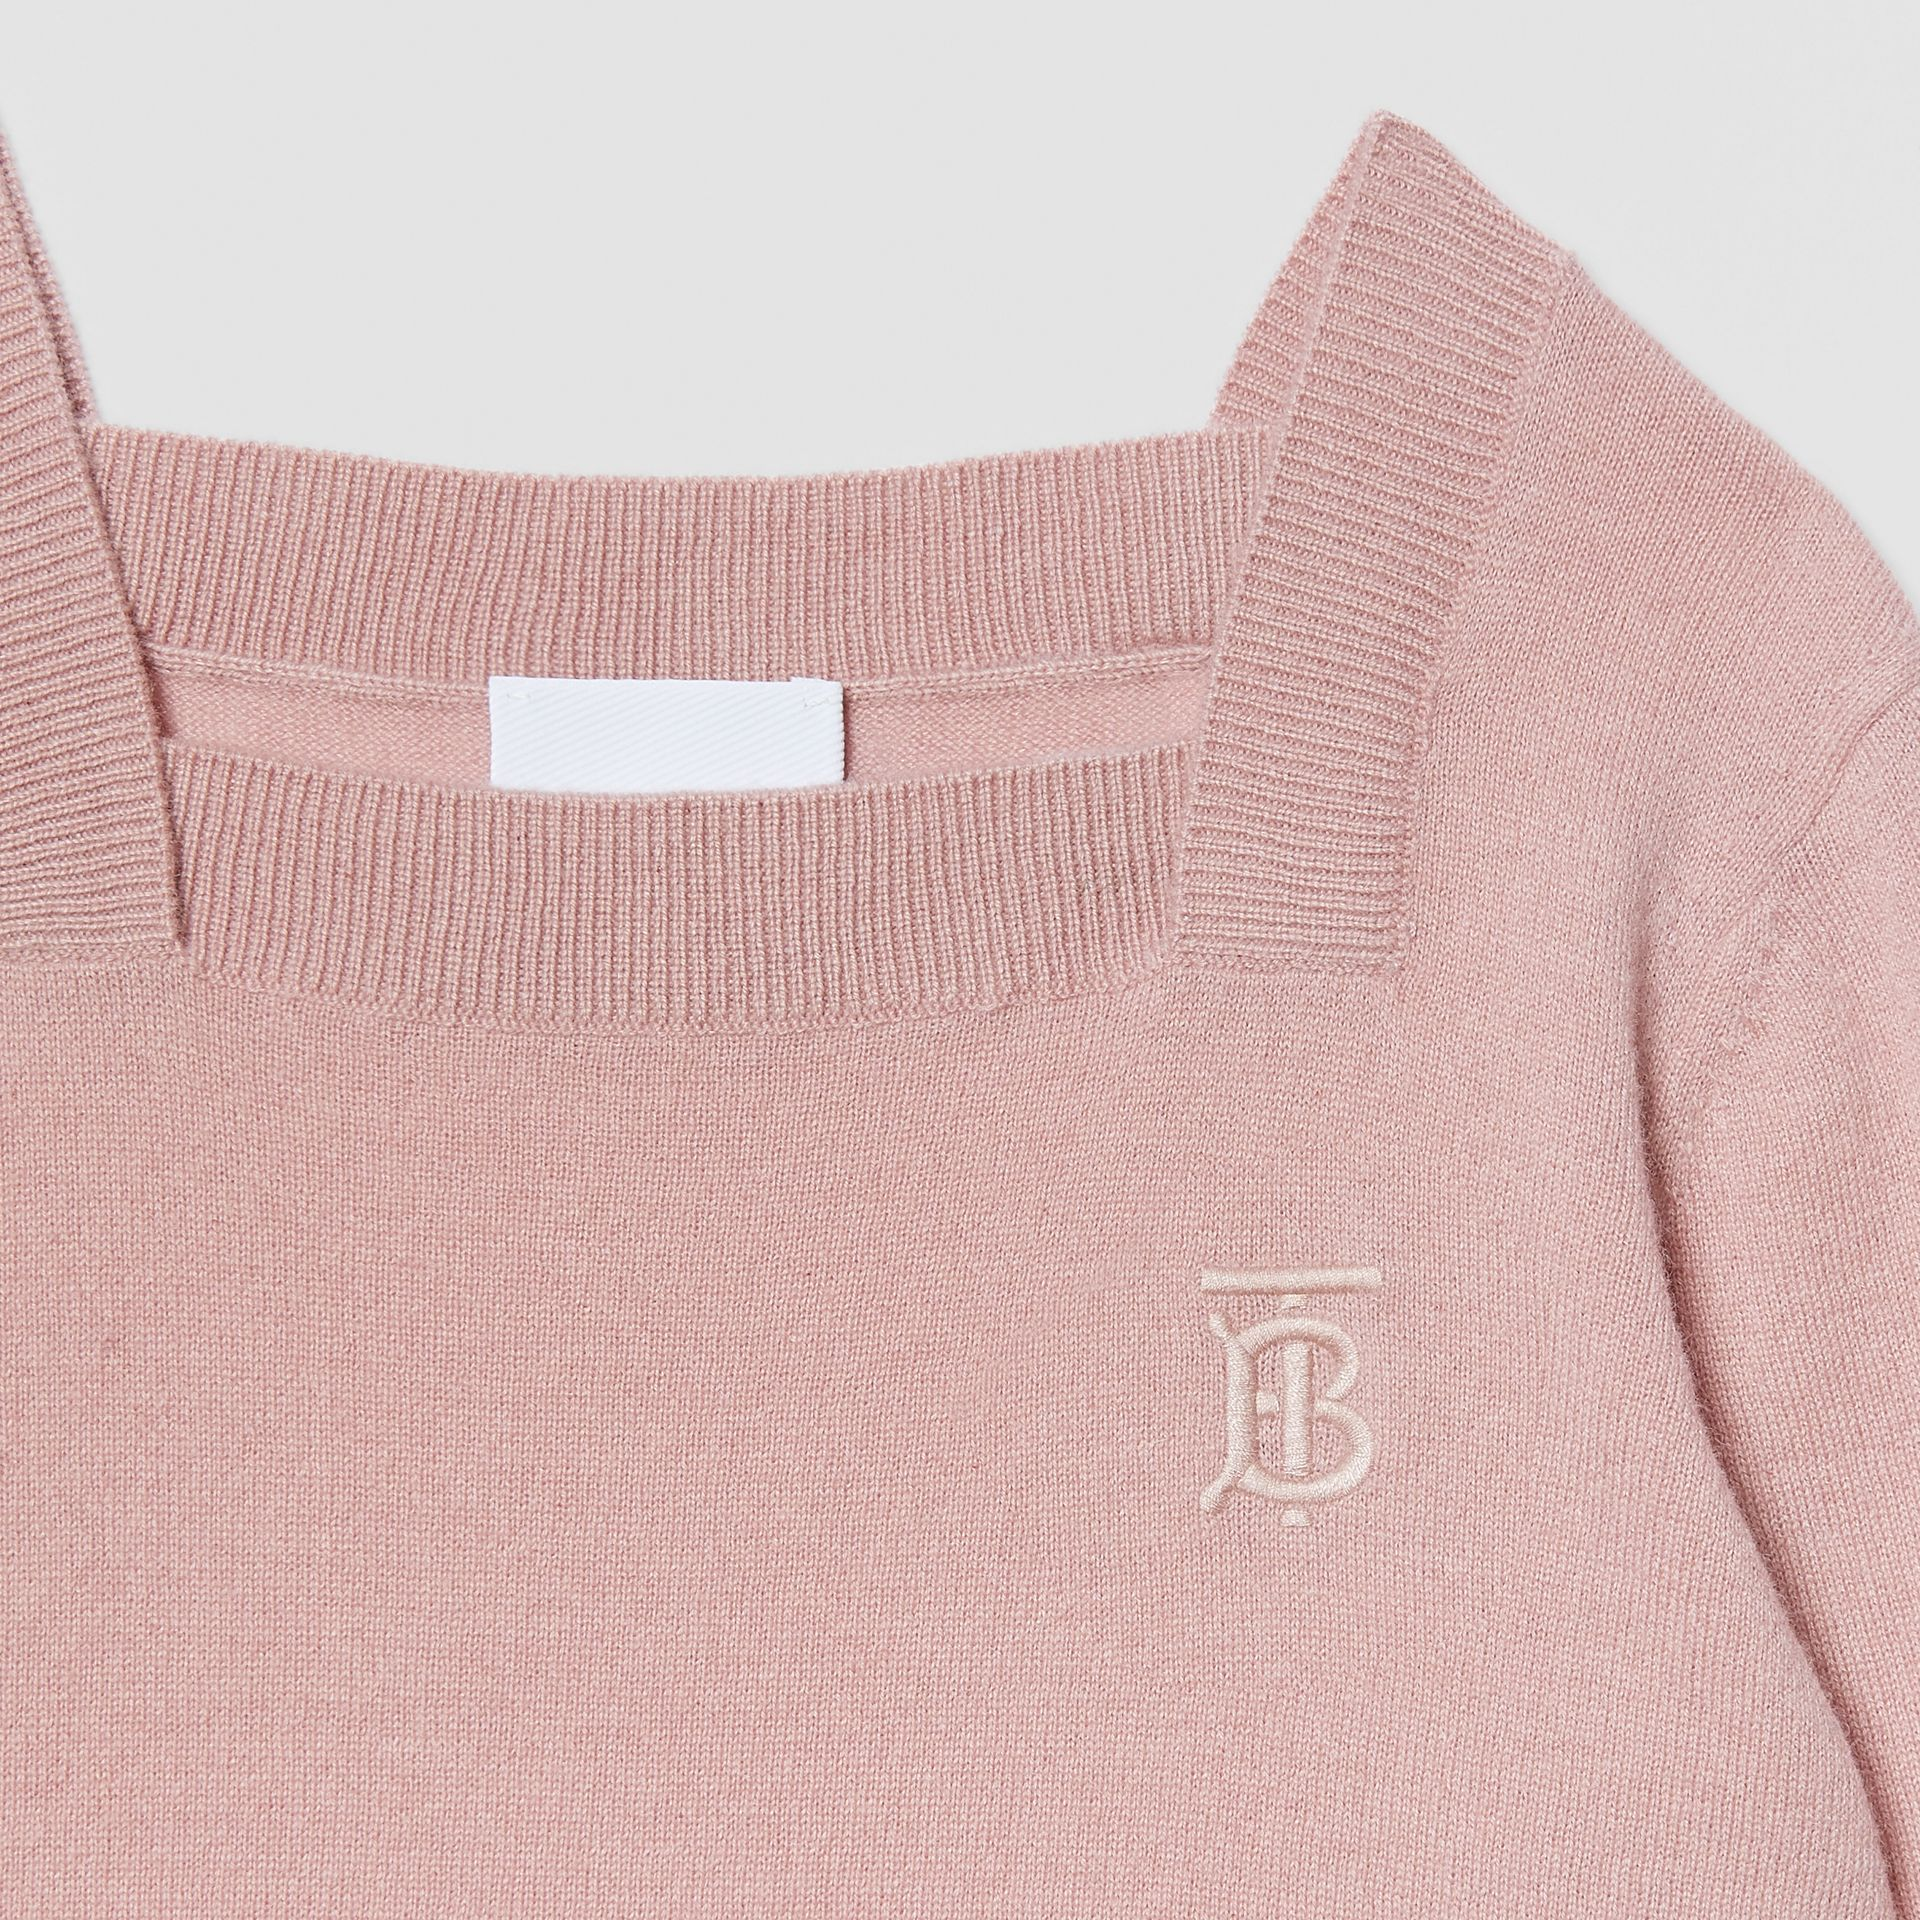 Monogram Motif Cashmere Sweater in Lavender Pink | Burberry - gallery image 4